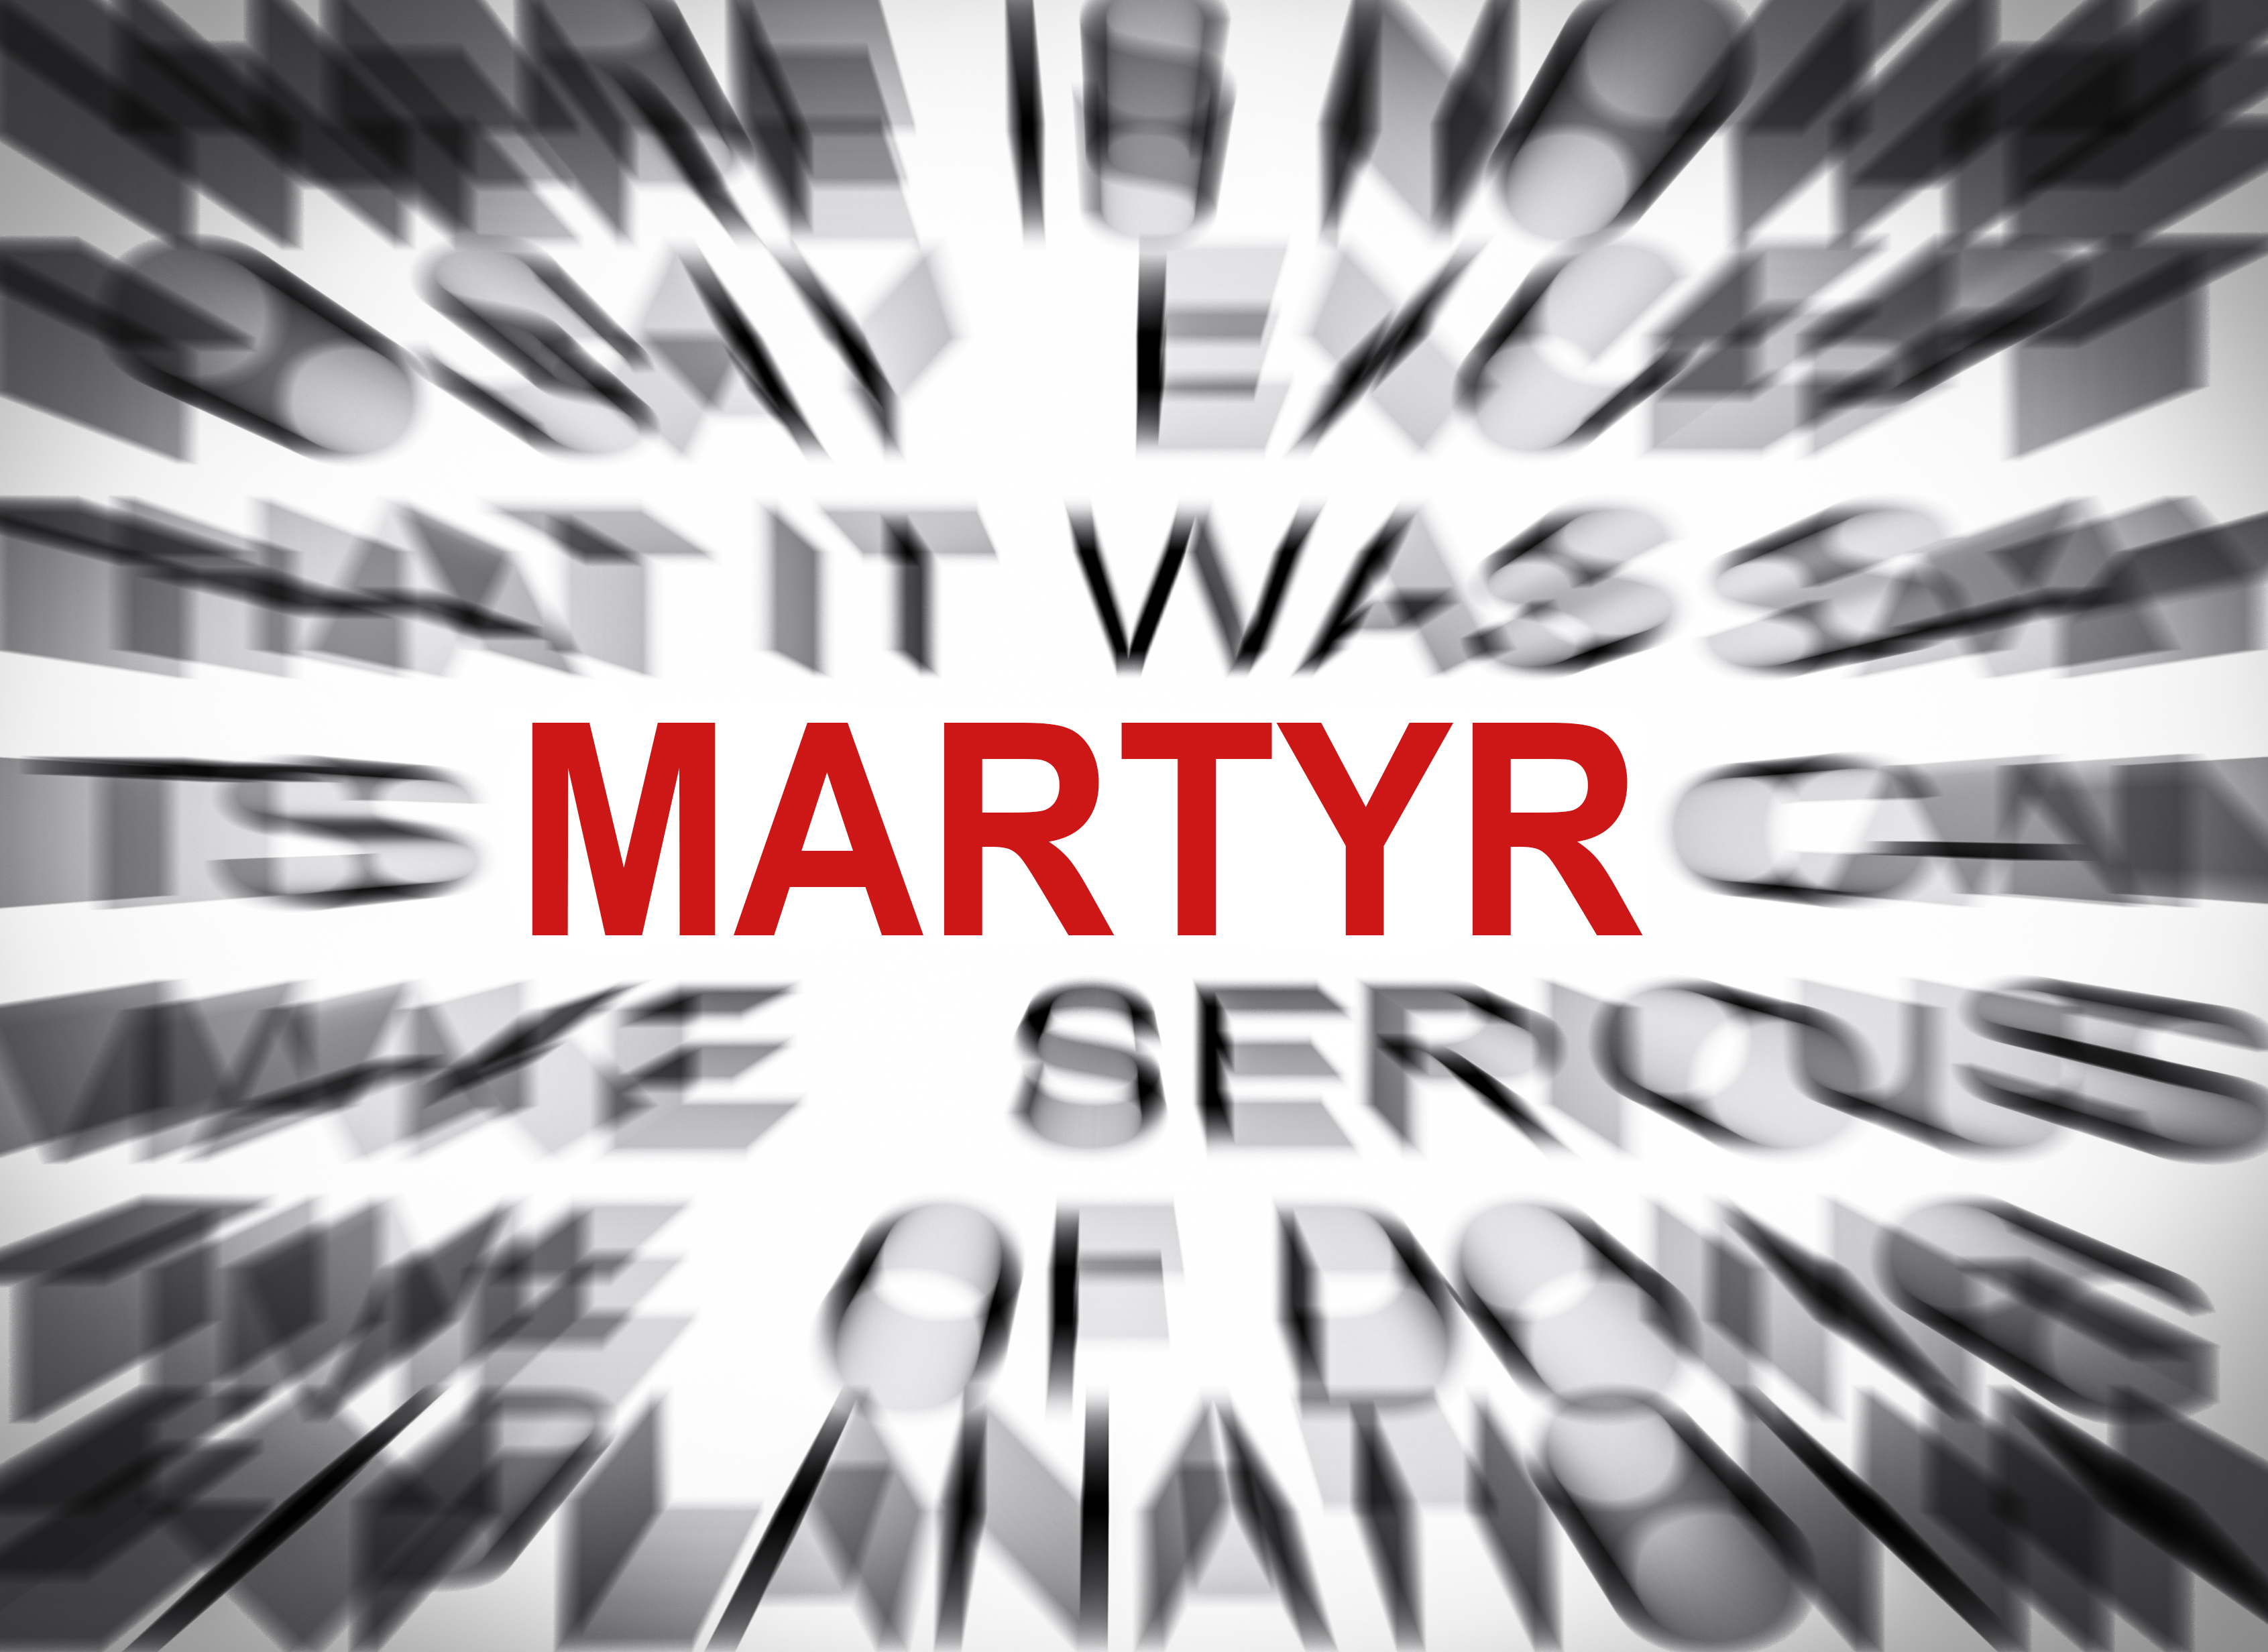 Blured text with focus on MARTYR